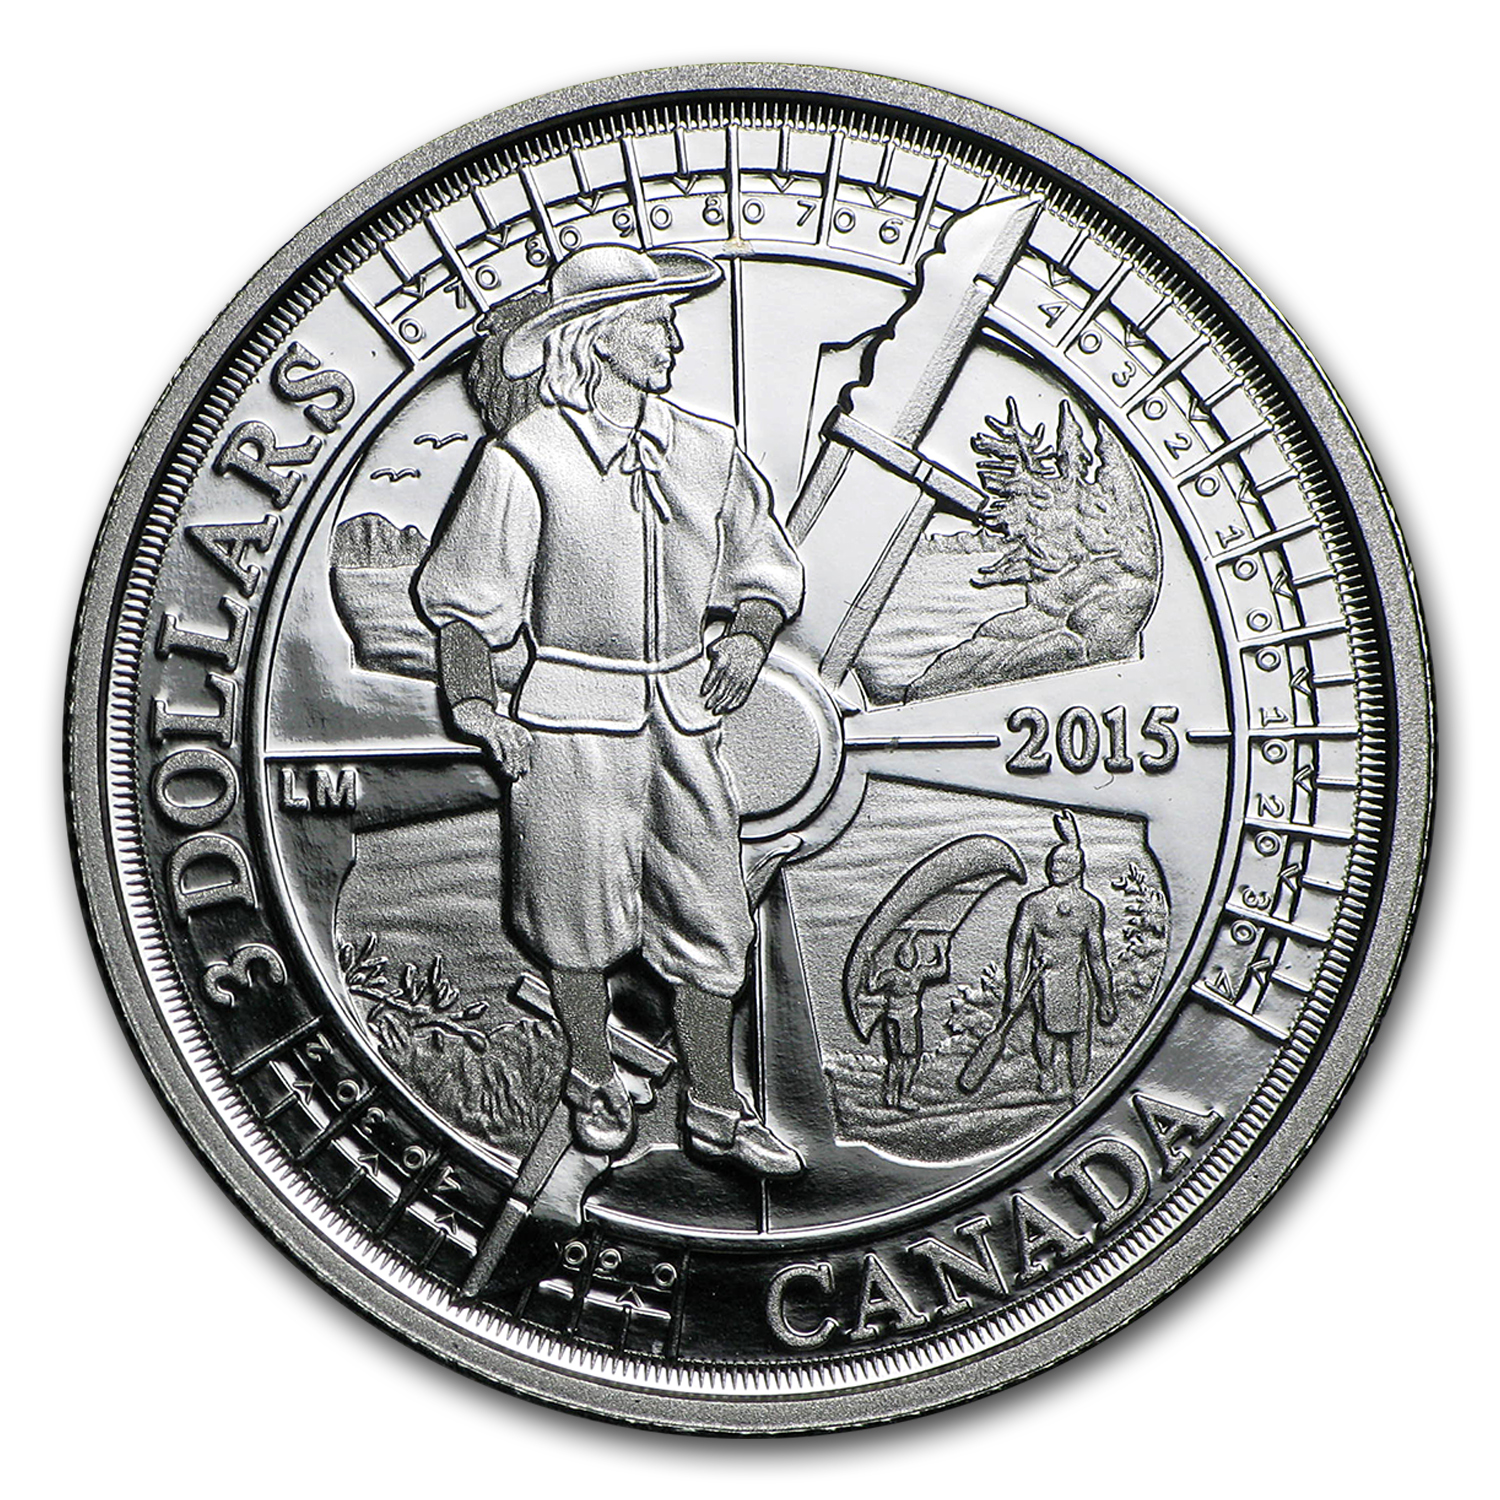 2015 Canada 1/4 oz Proof Silver $3 Anniv of Samuel de Champlain